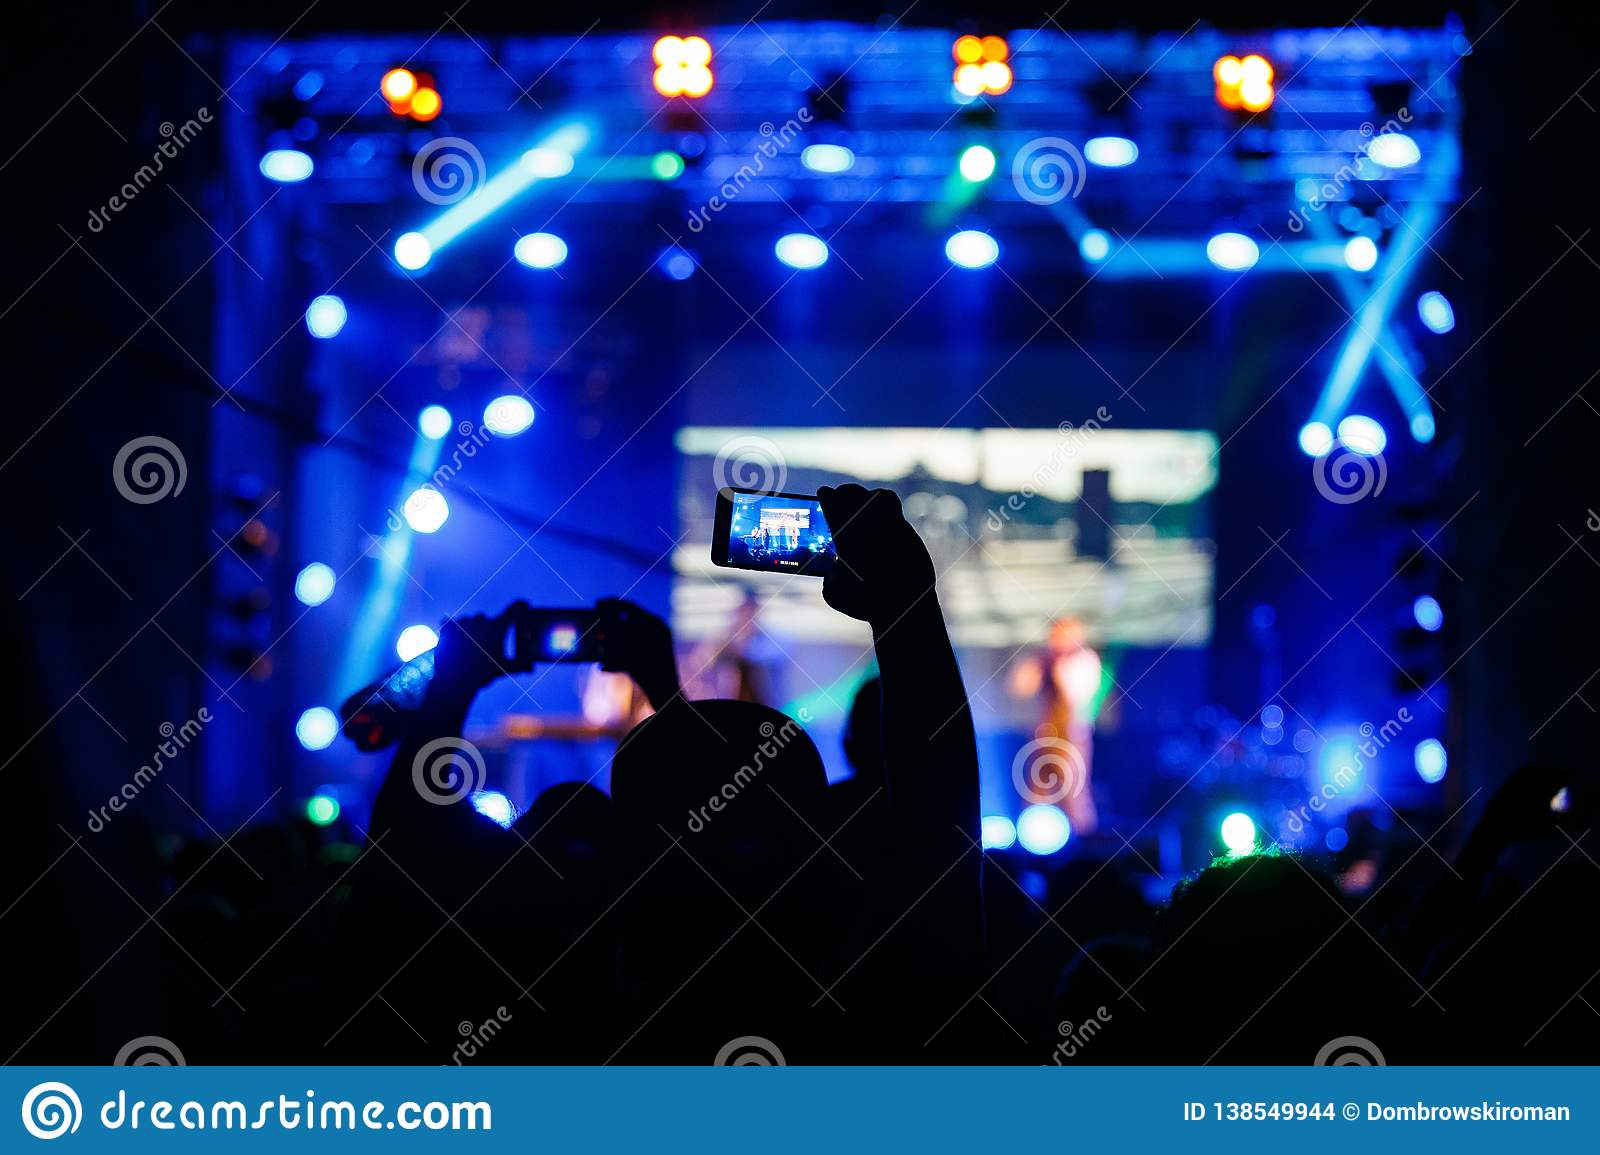 People at concert shooting video or photo